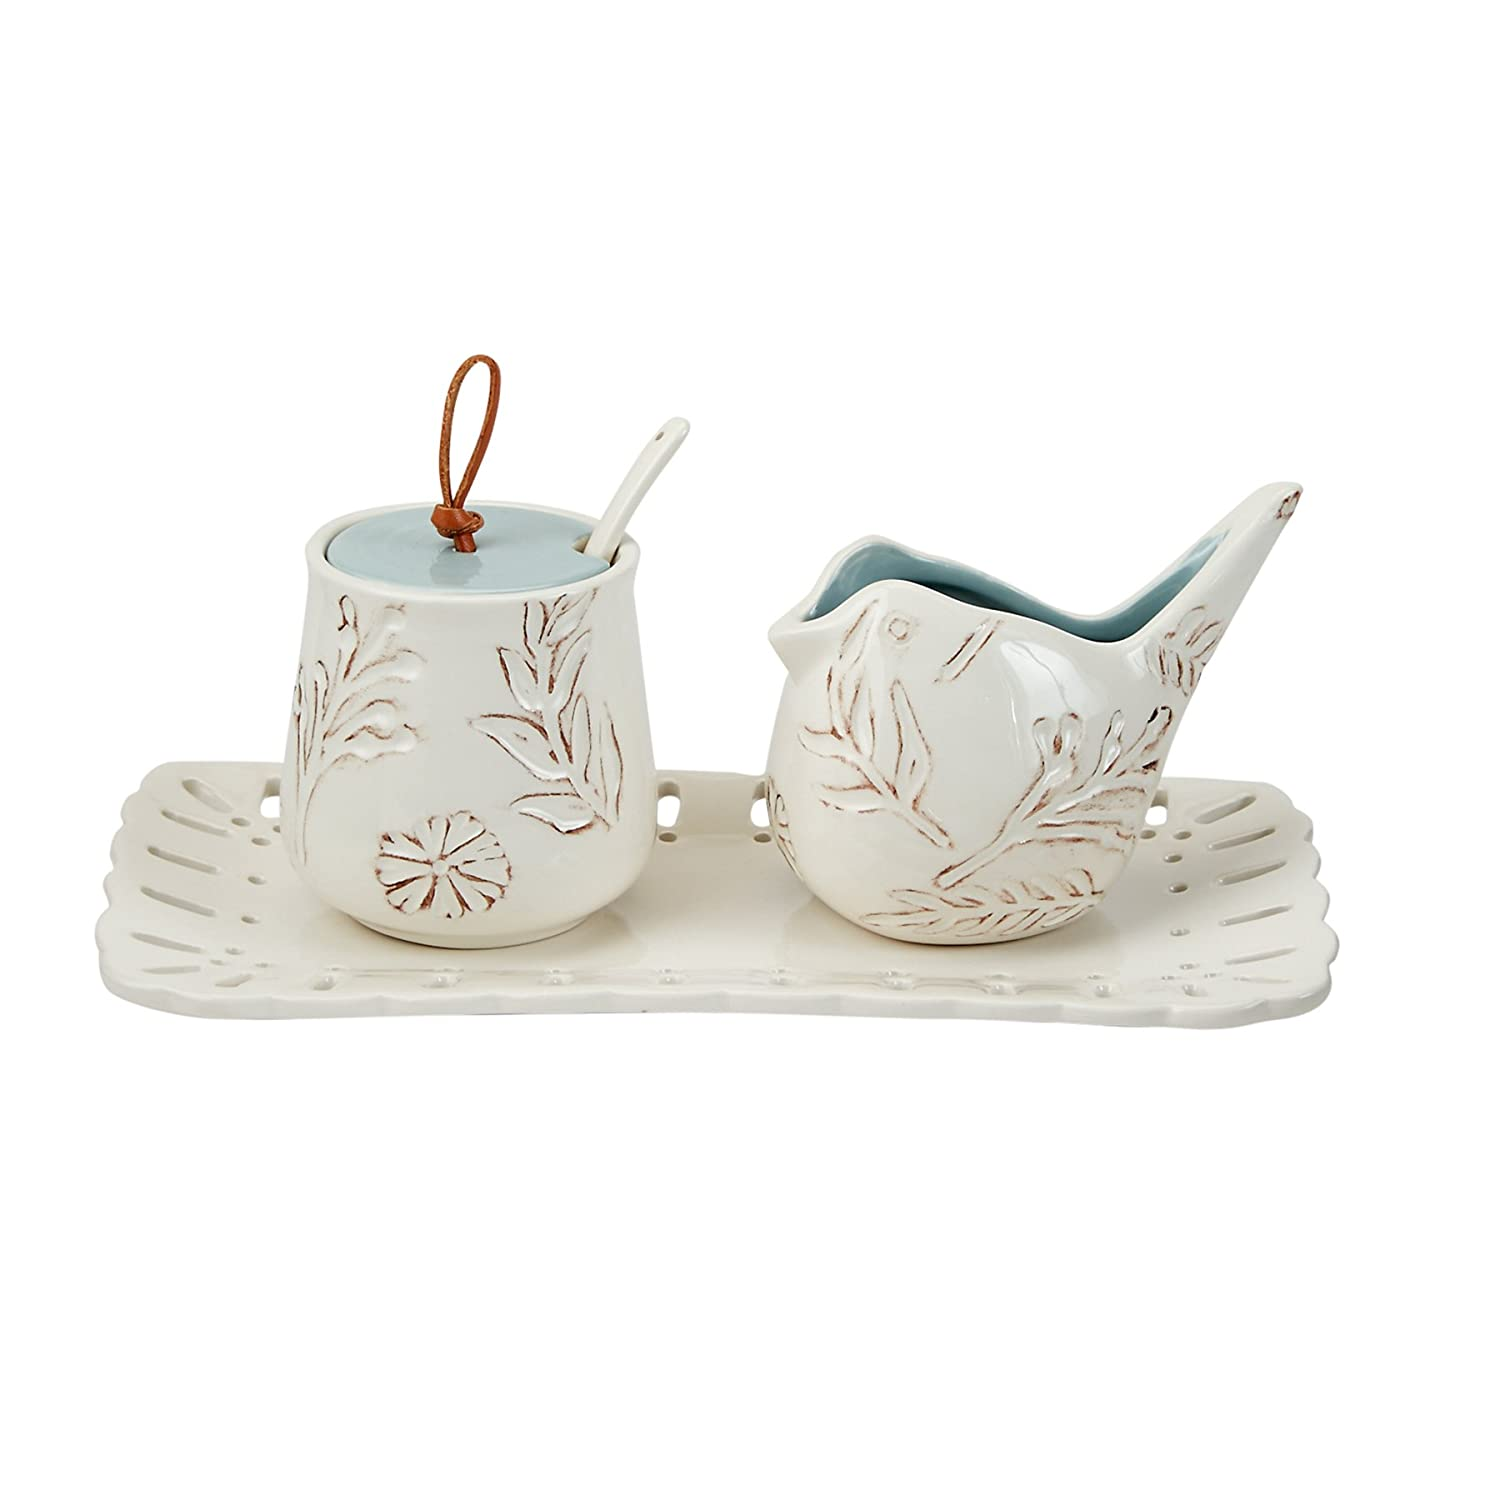 Christmas Tablescape Décor - Mud Pie white sculpted bird cream and sugar set